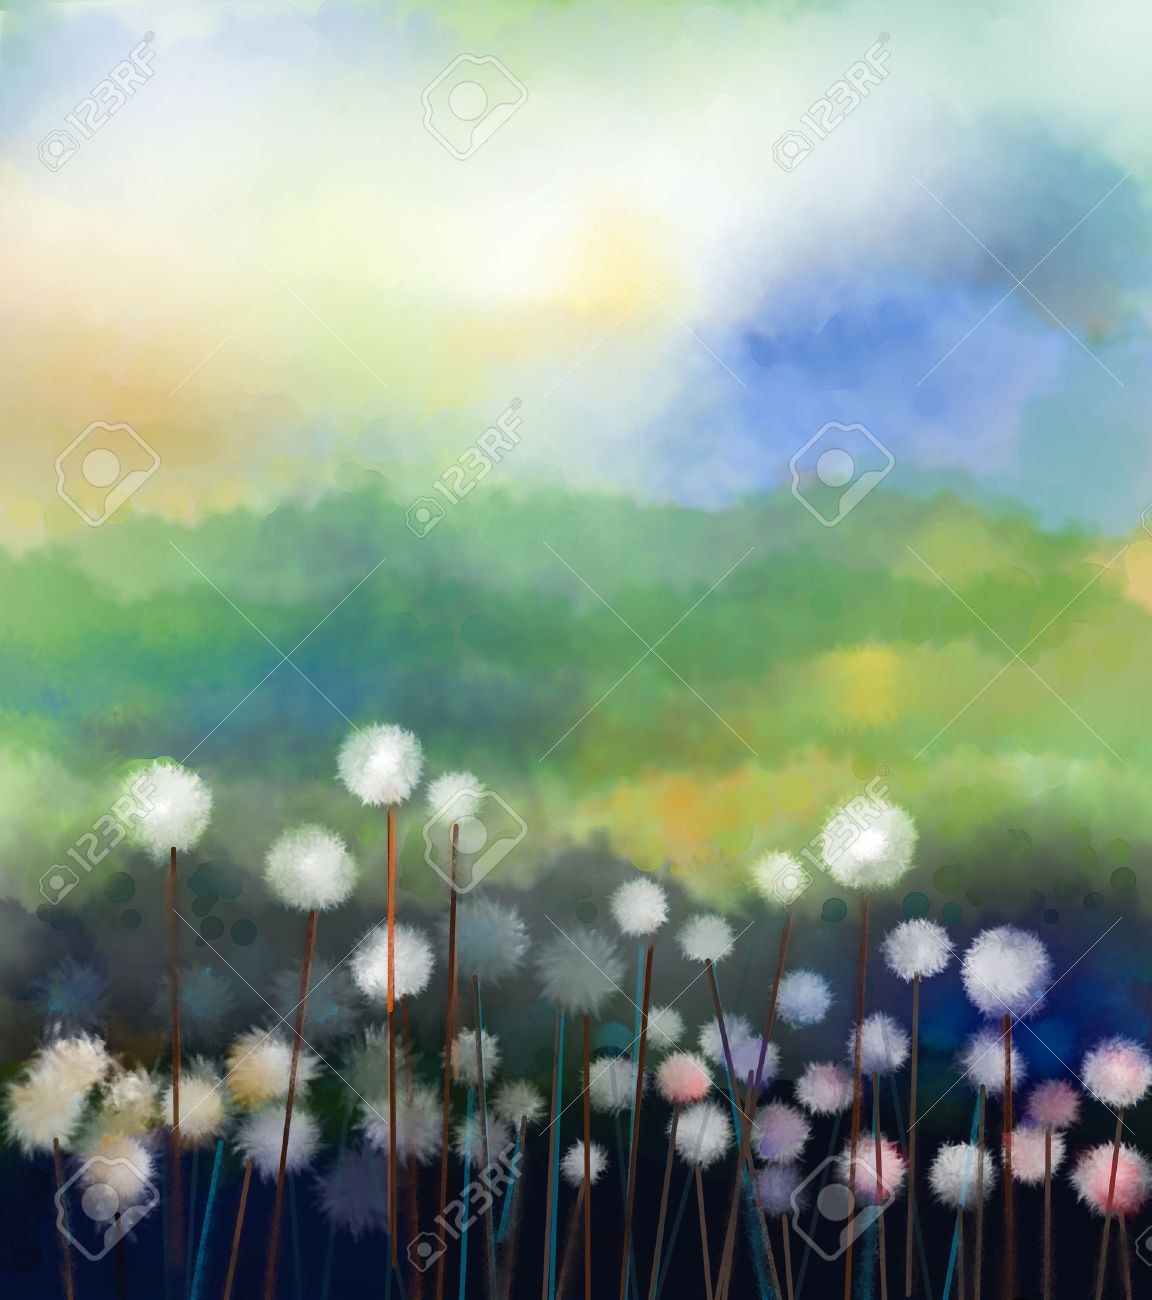 Abstract Oil Painting White Flowers Field In Soft Color Oil